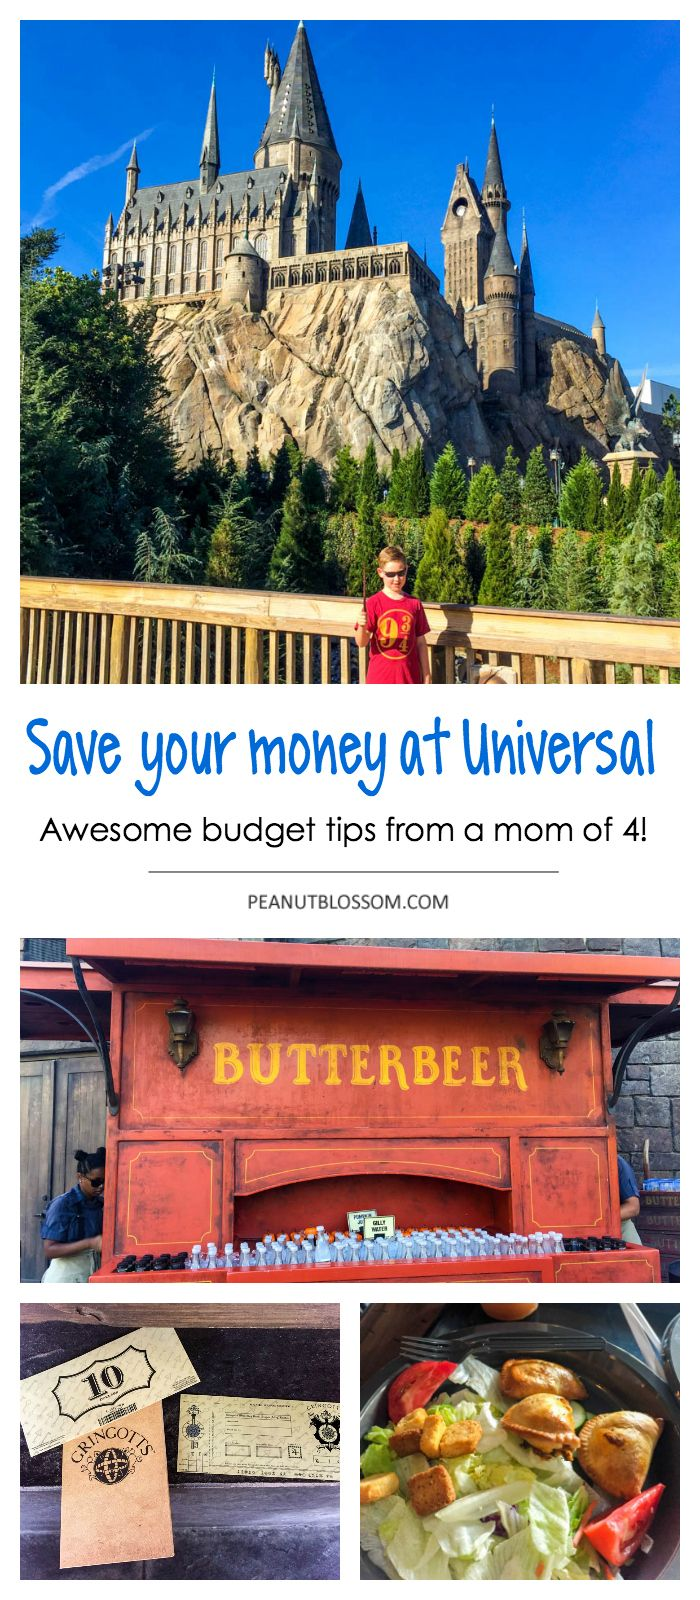 Save your money like a pro: Tips for visiting Harry Potter at Universal on a budget. 14 money saving tips from a frugal mom of 4 kids. Perfect for planning a trip to Universal Resort Orlando to see The Wizarding World of Harry Potter.